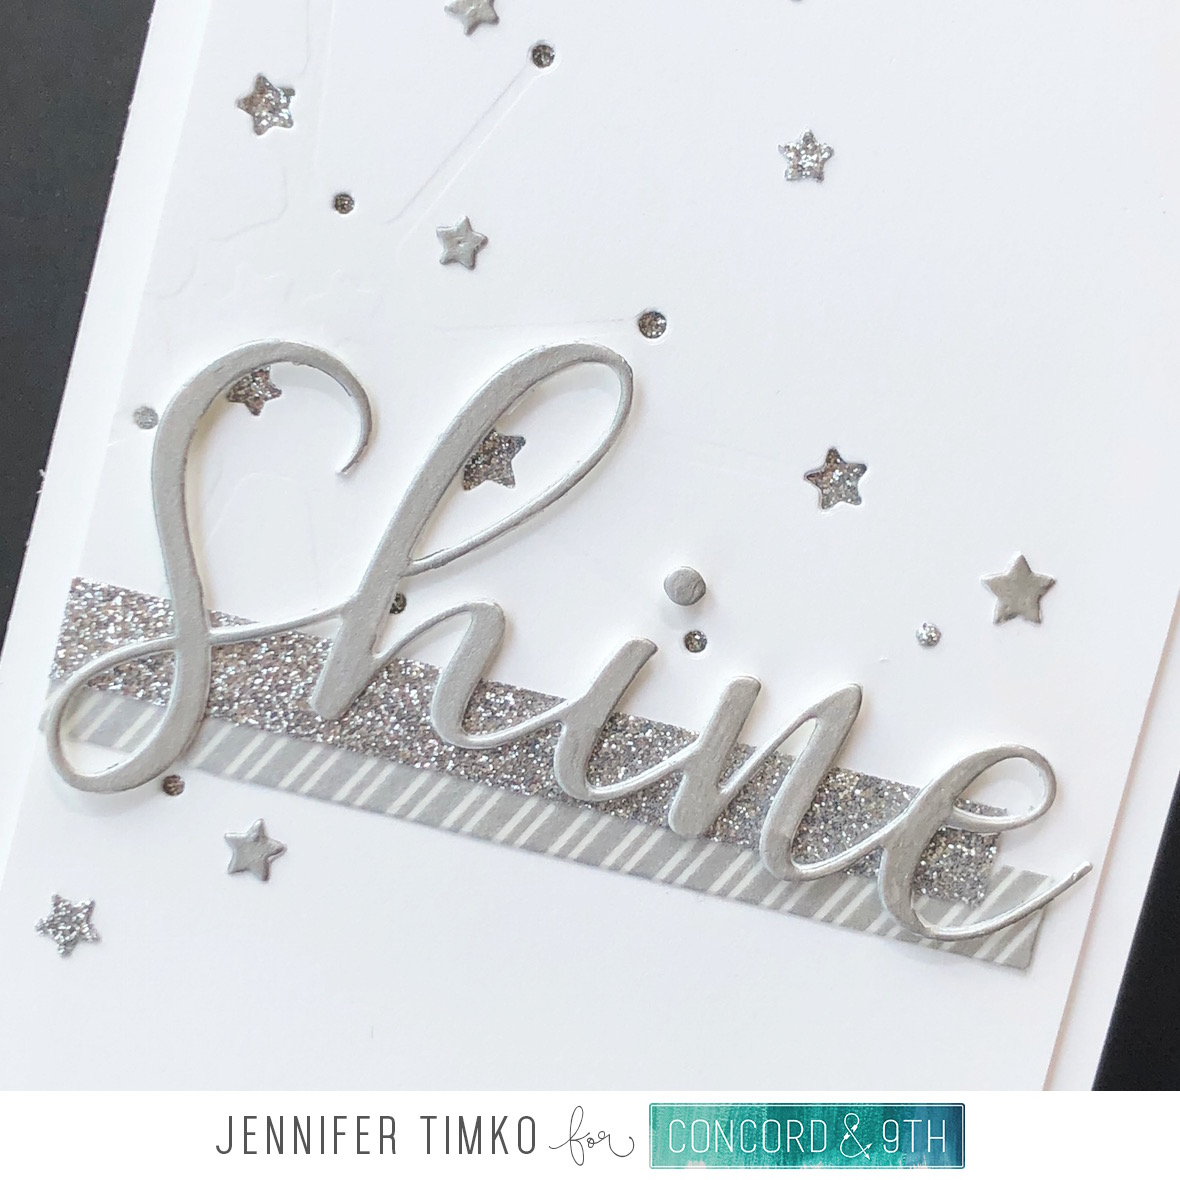 Shine by Jen Timko | Star Turnabout Dies by Concord and 9th, Shine On Dies by Concord and 9th, Neutrals Glitter Paper Pack, Smooch Accent Ink by Clearsnap